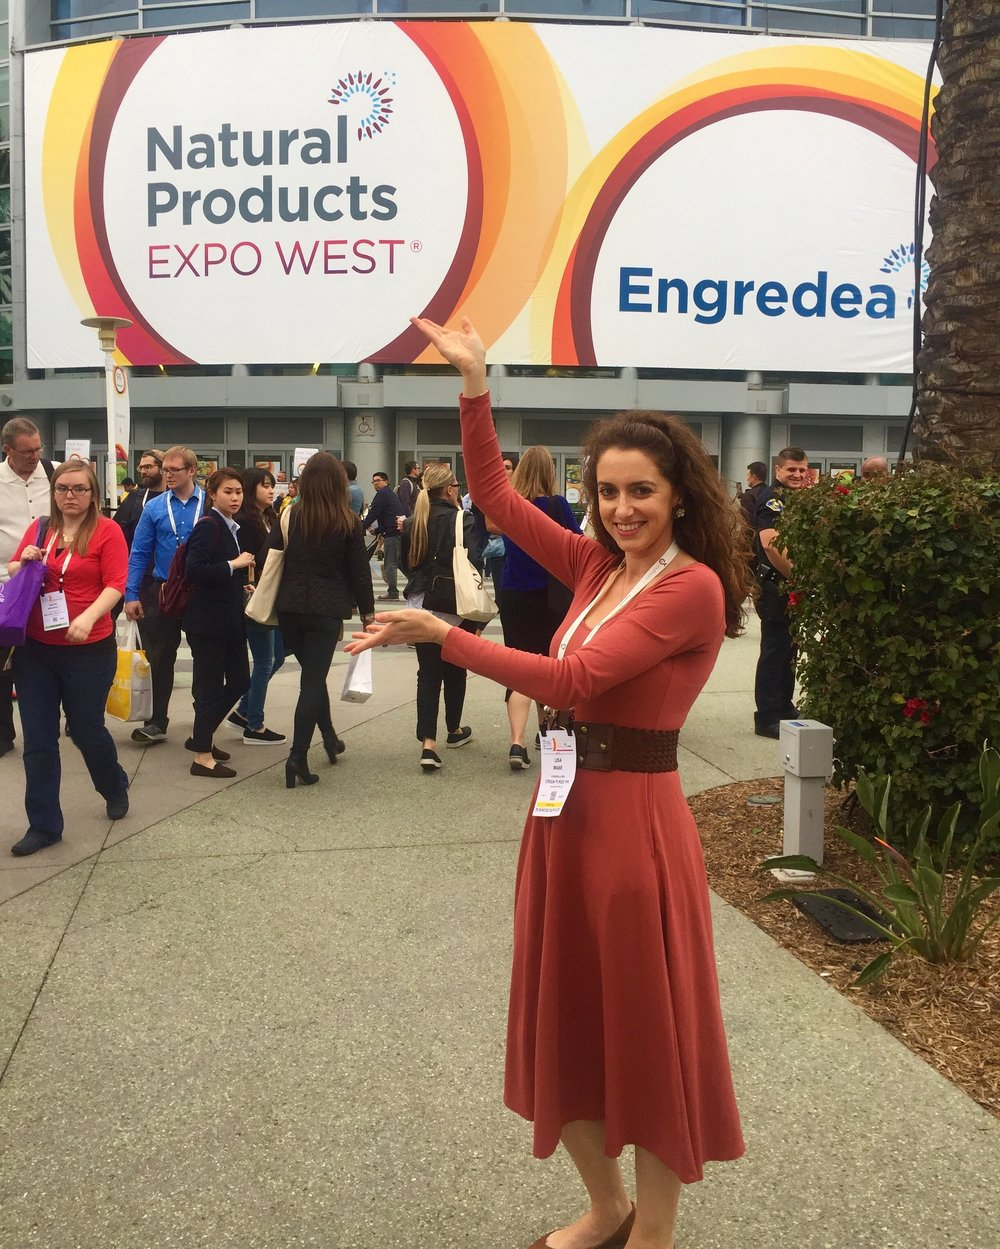 Green Purse PR's Lisa Mabe at the entrance of Expo West